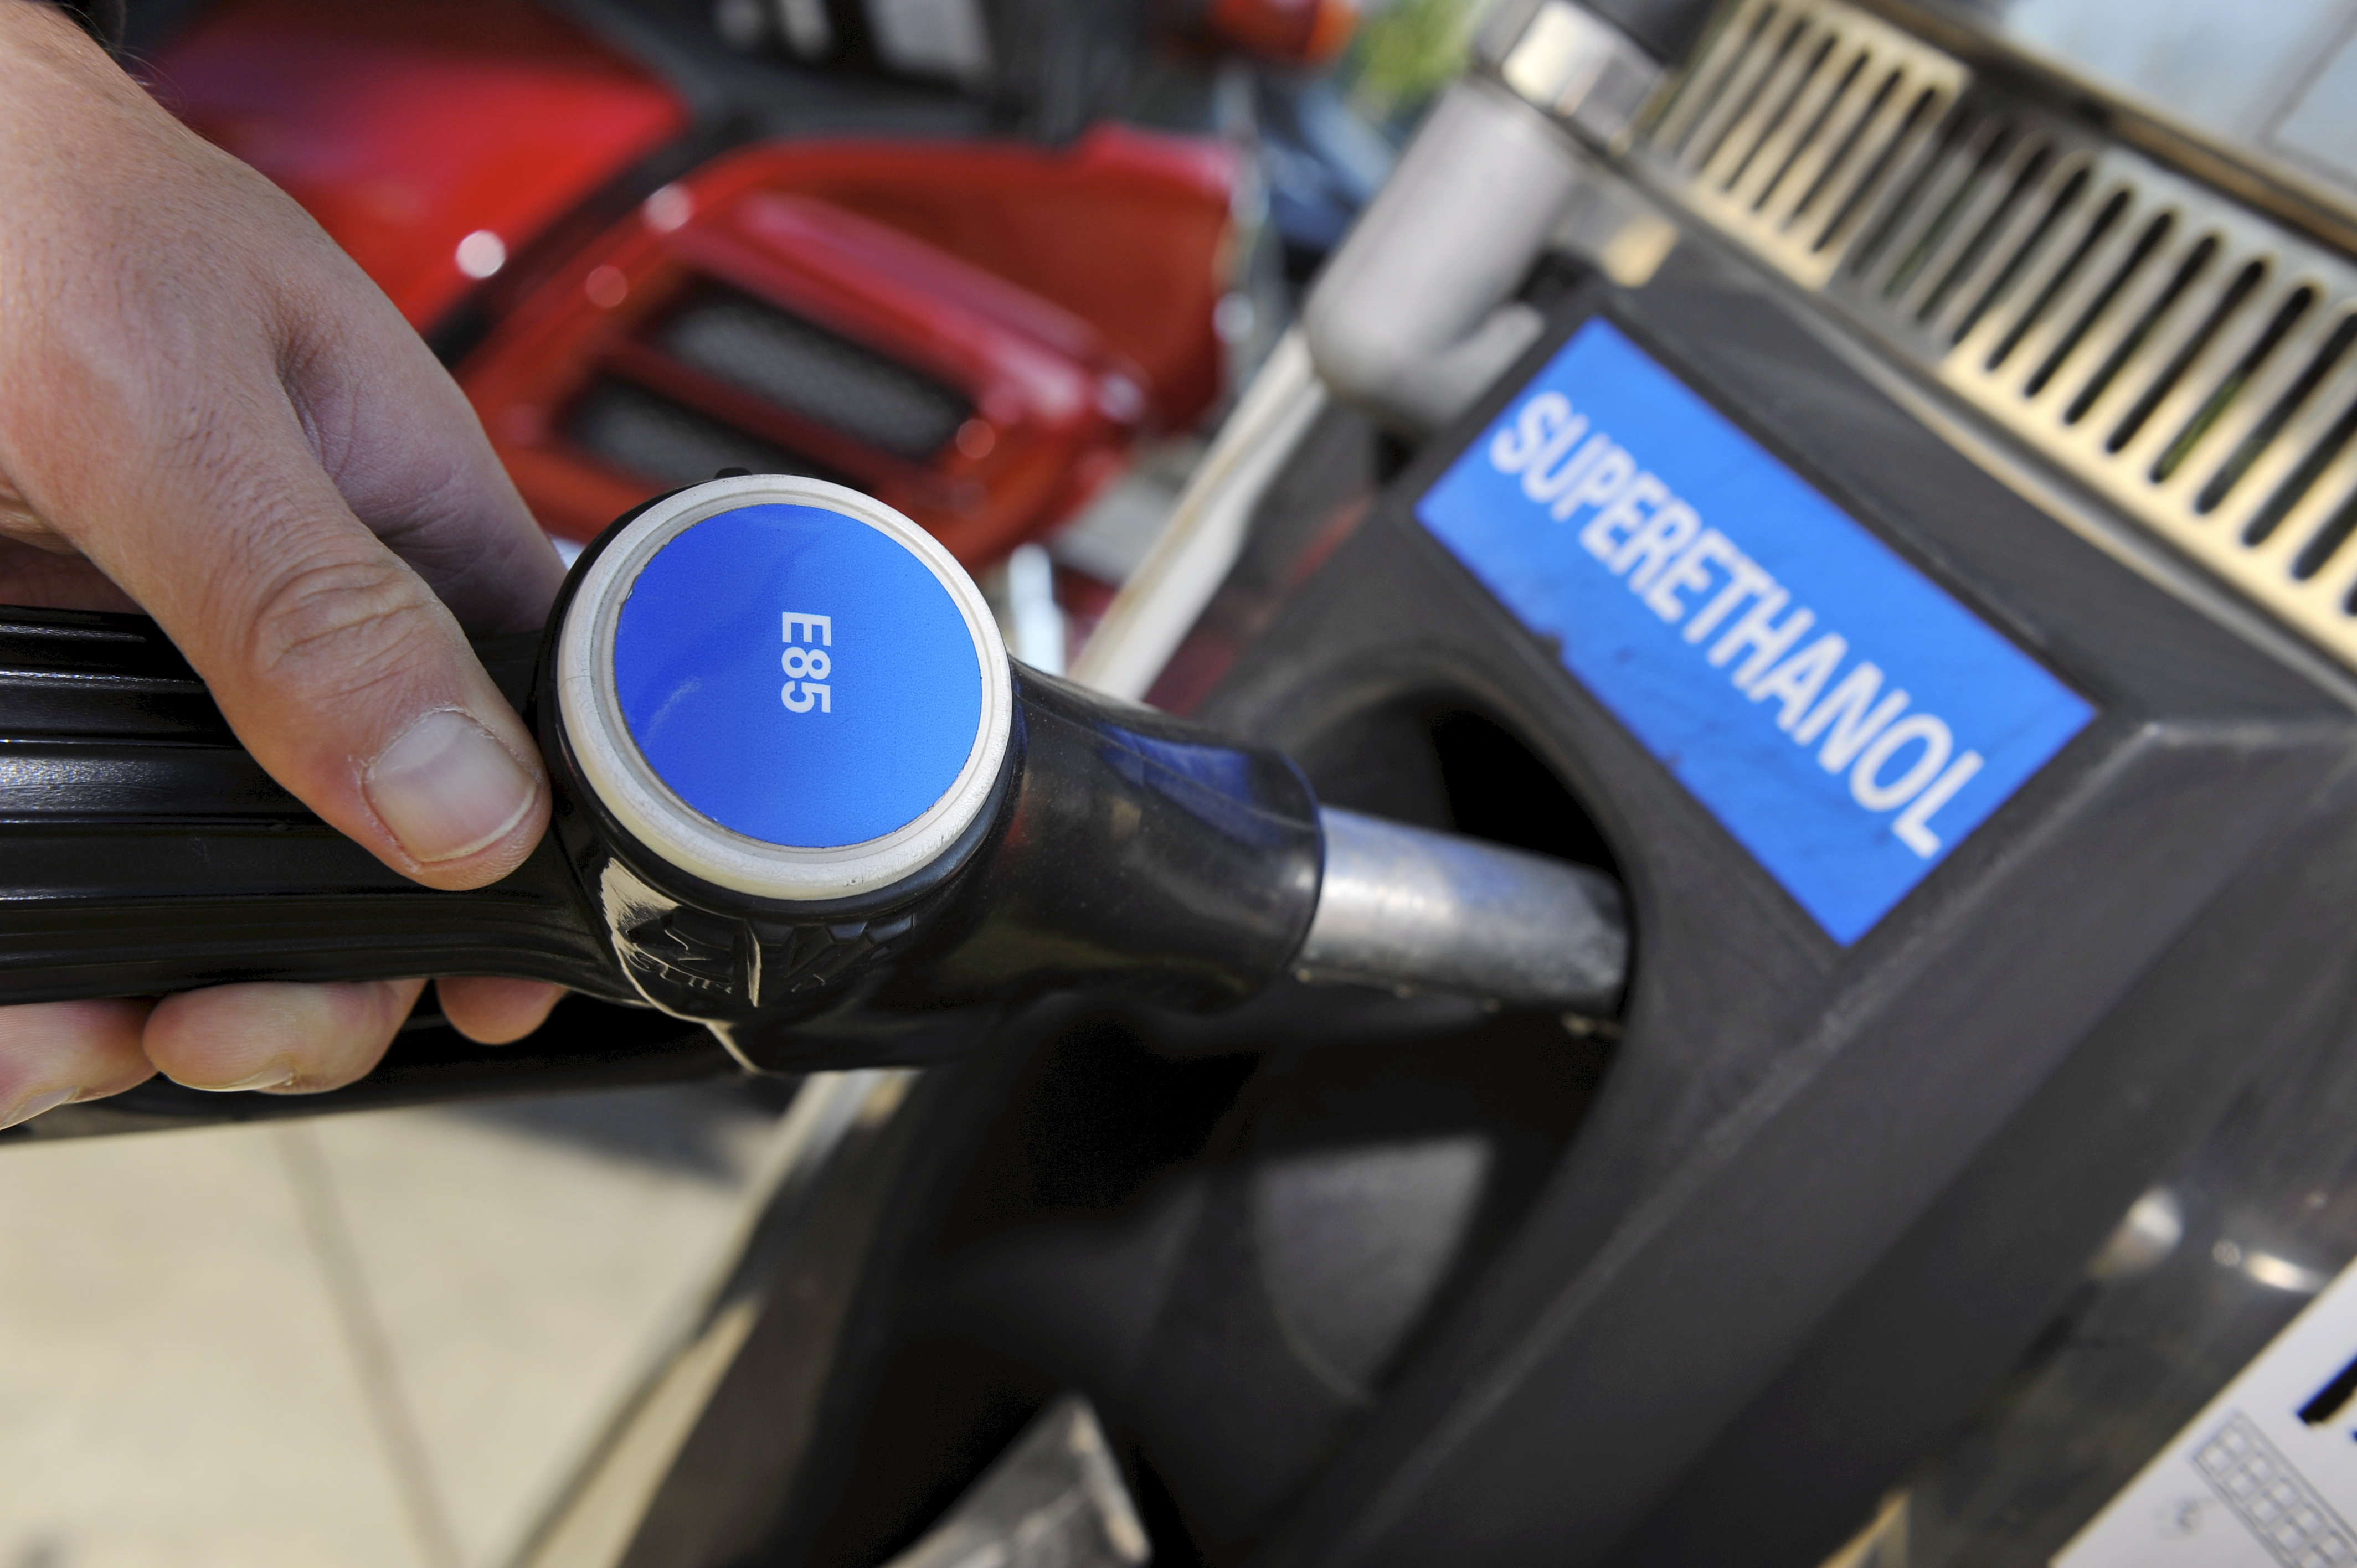 « Le Superéthanol E85 confirme son potentiel de réduction des émissions polluantes »